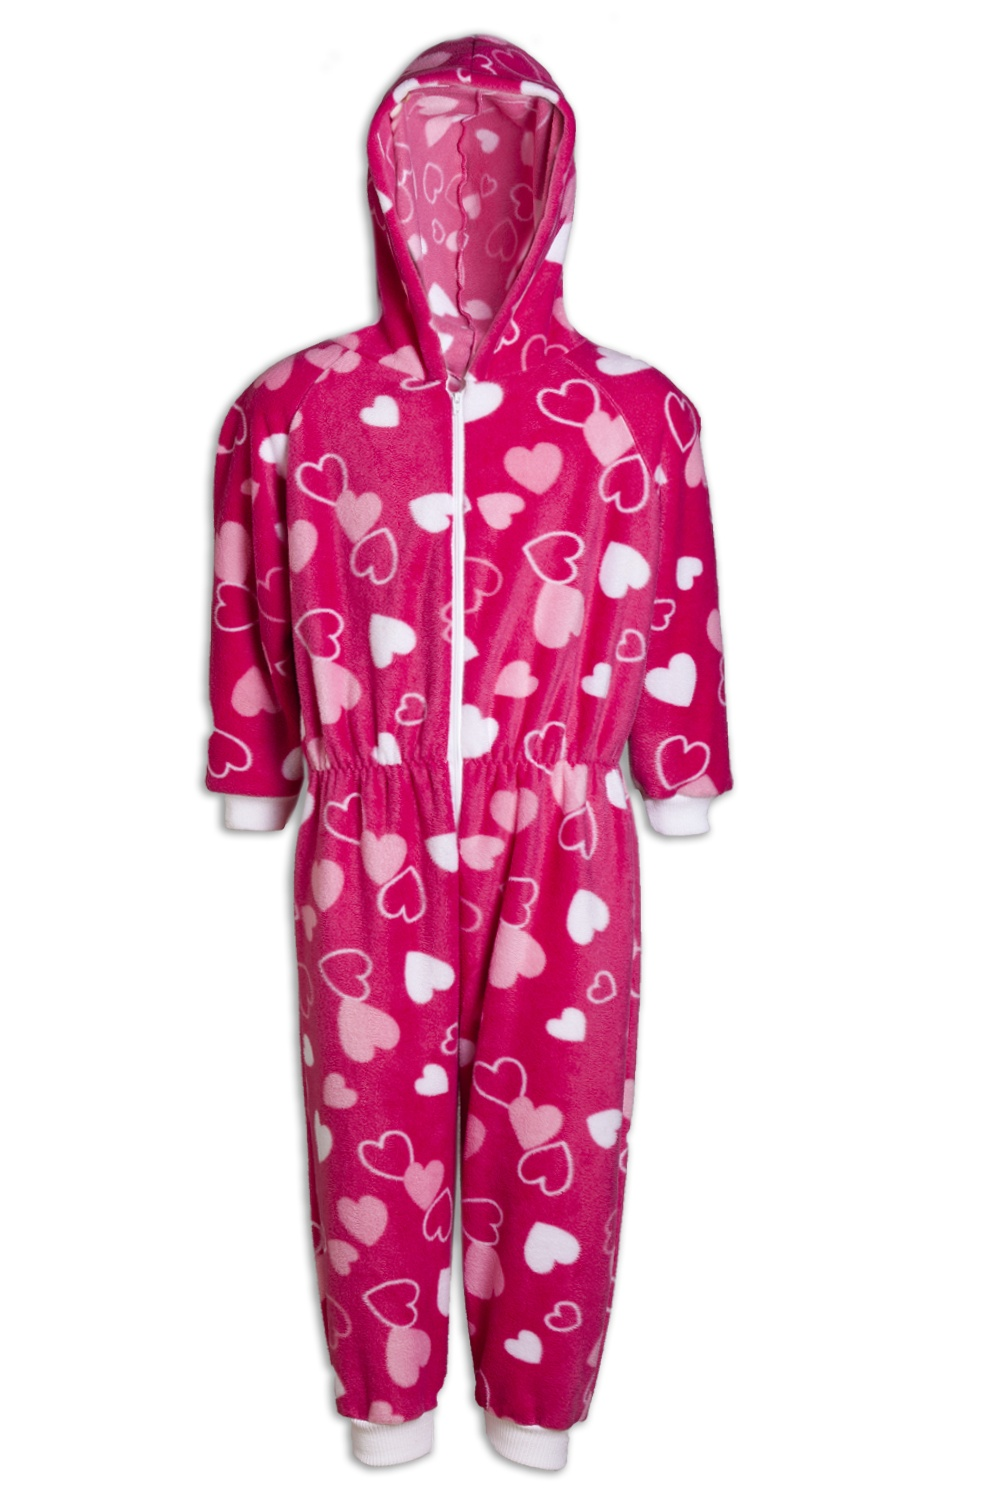 9a59276a4 Childrens Heart Print Fleece Hooded All In One Pink Onesie Pyjama